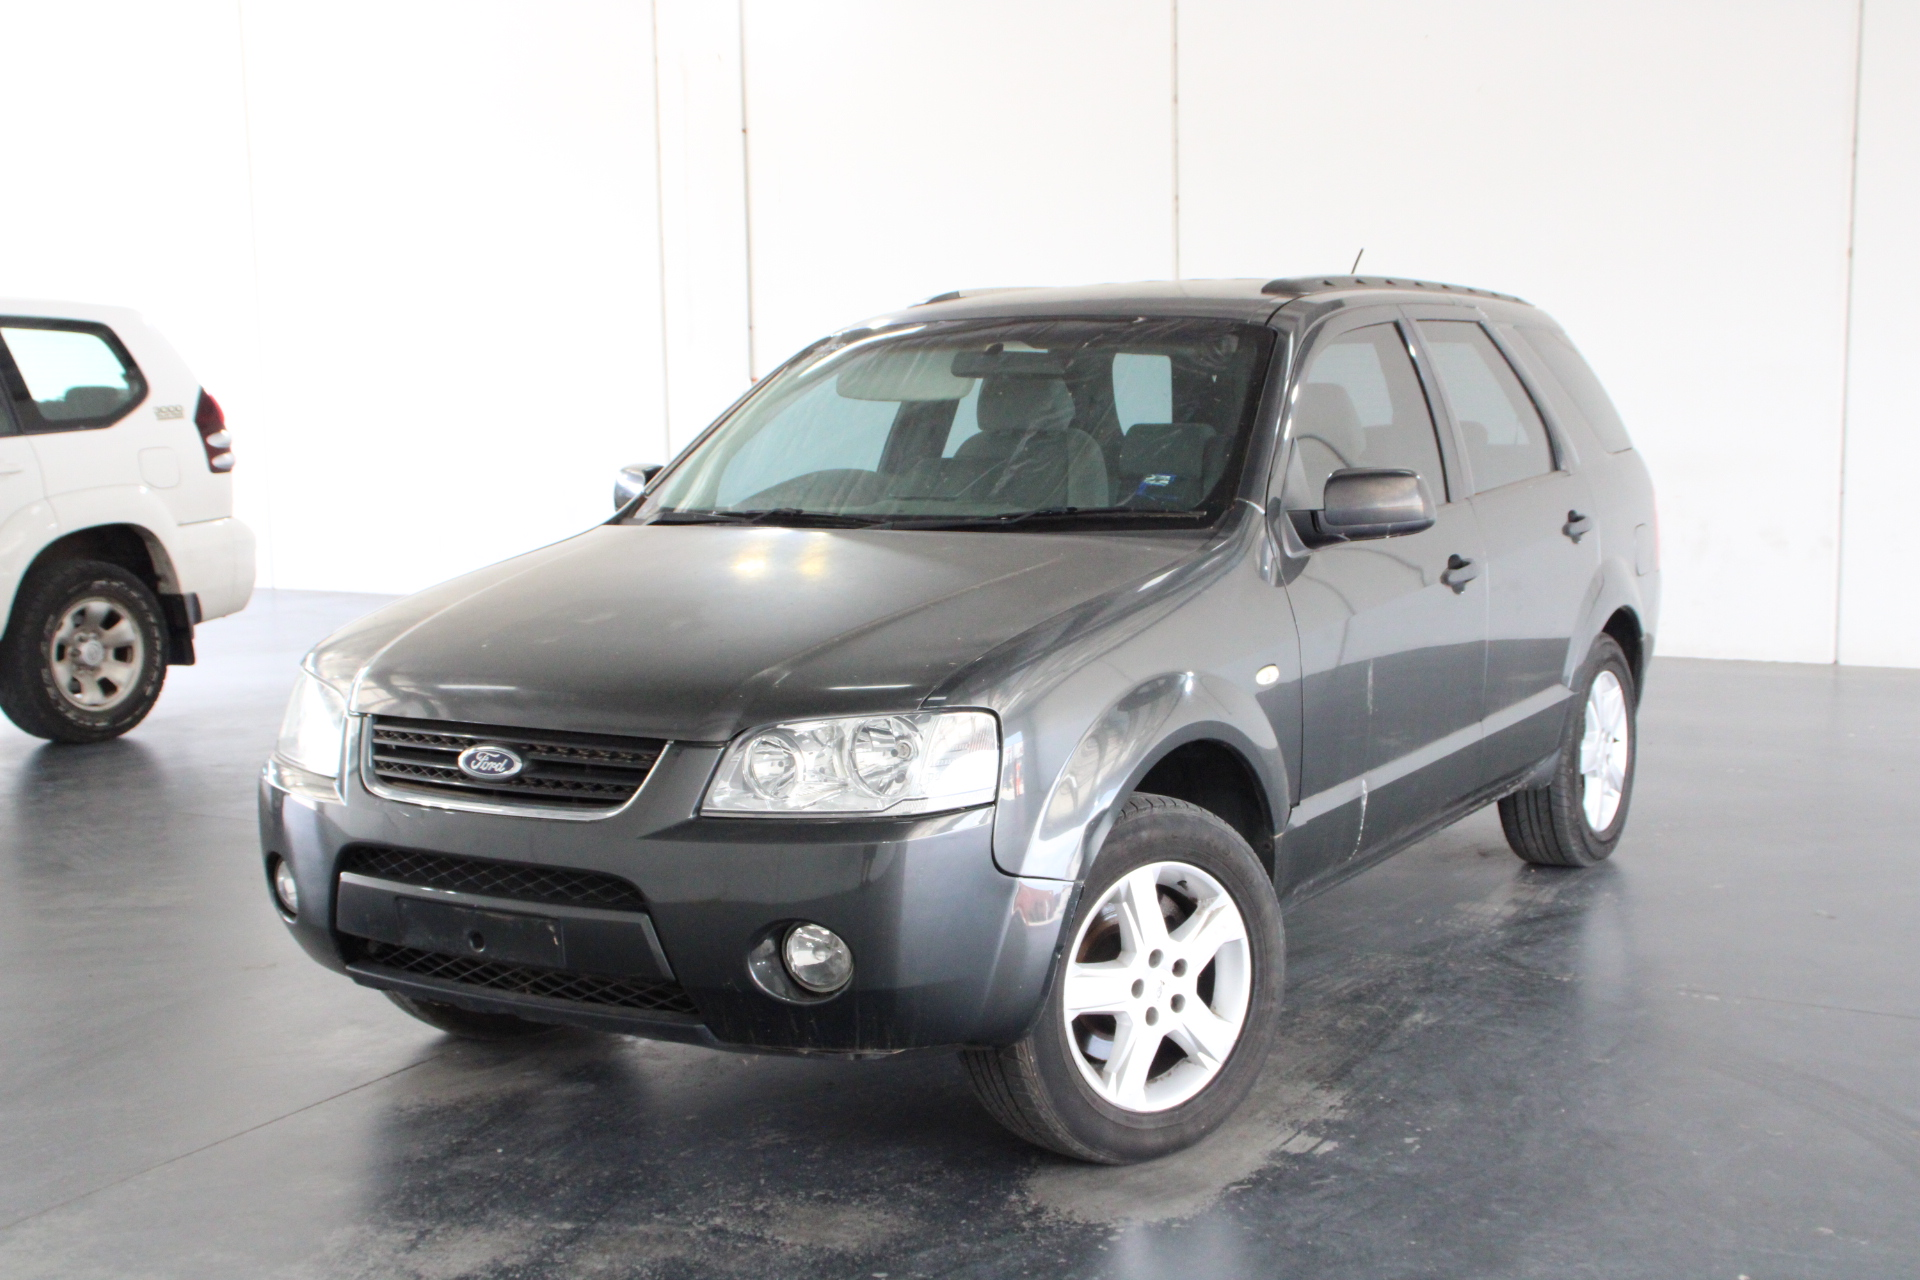 2006 Ford Territory TS (RWD) SY Automatic Wagon